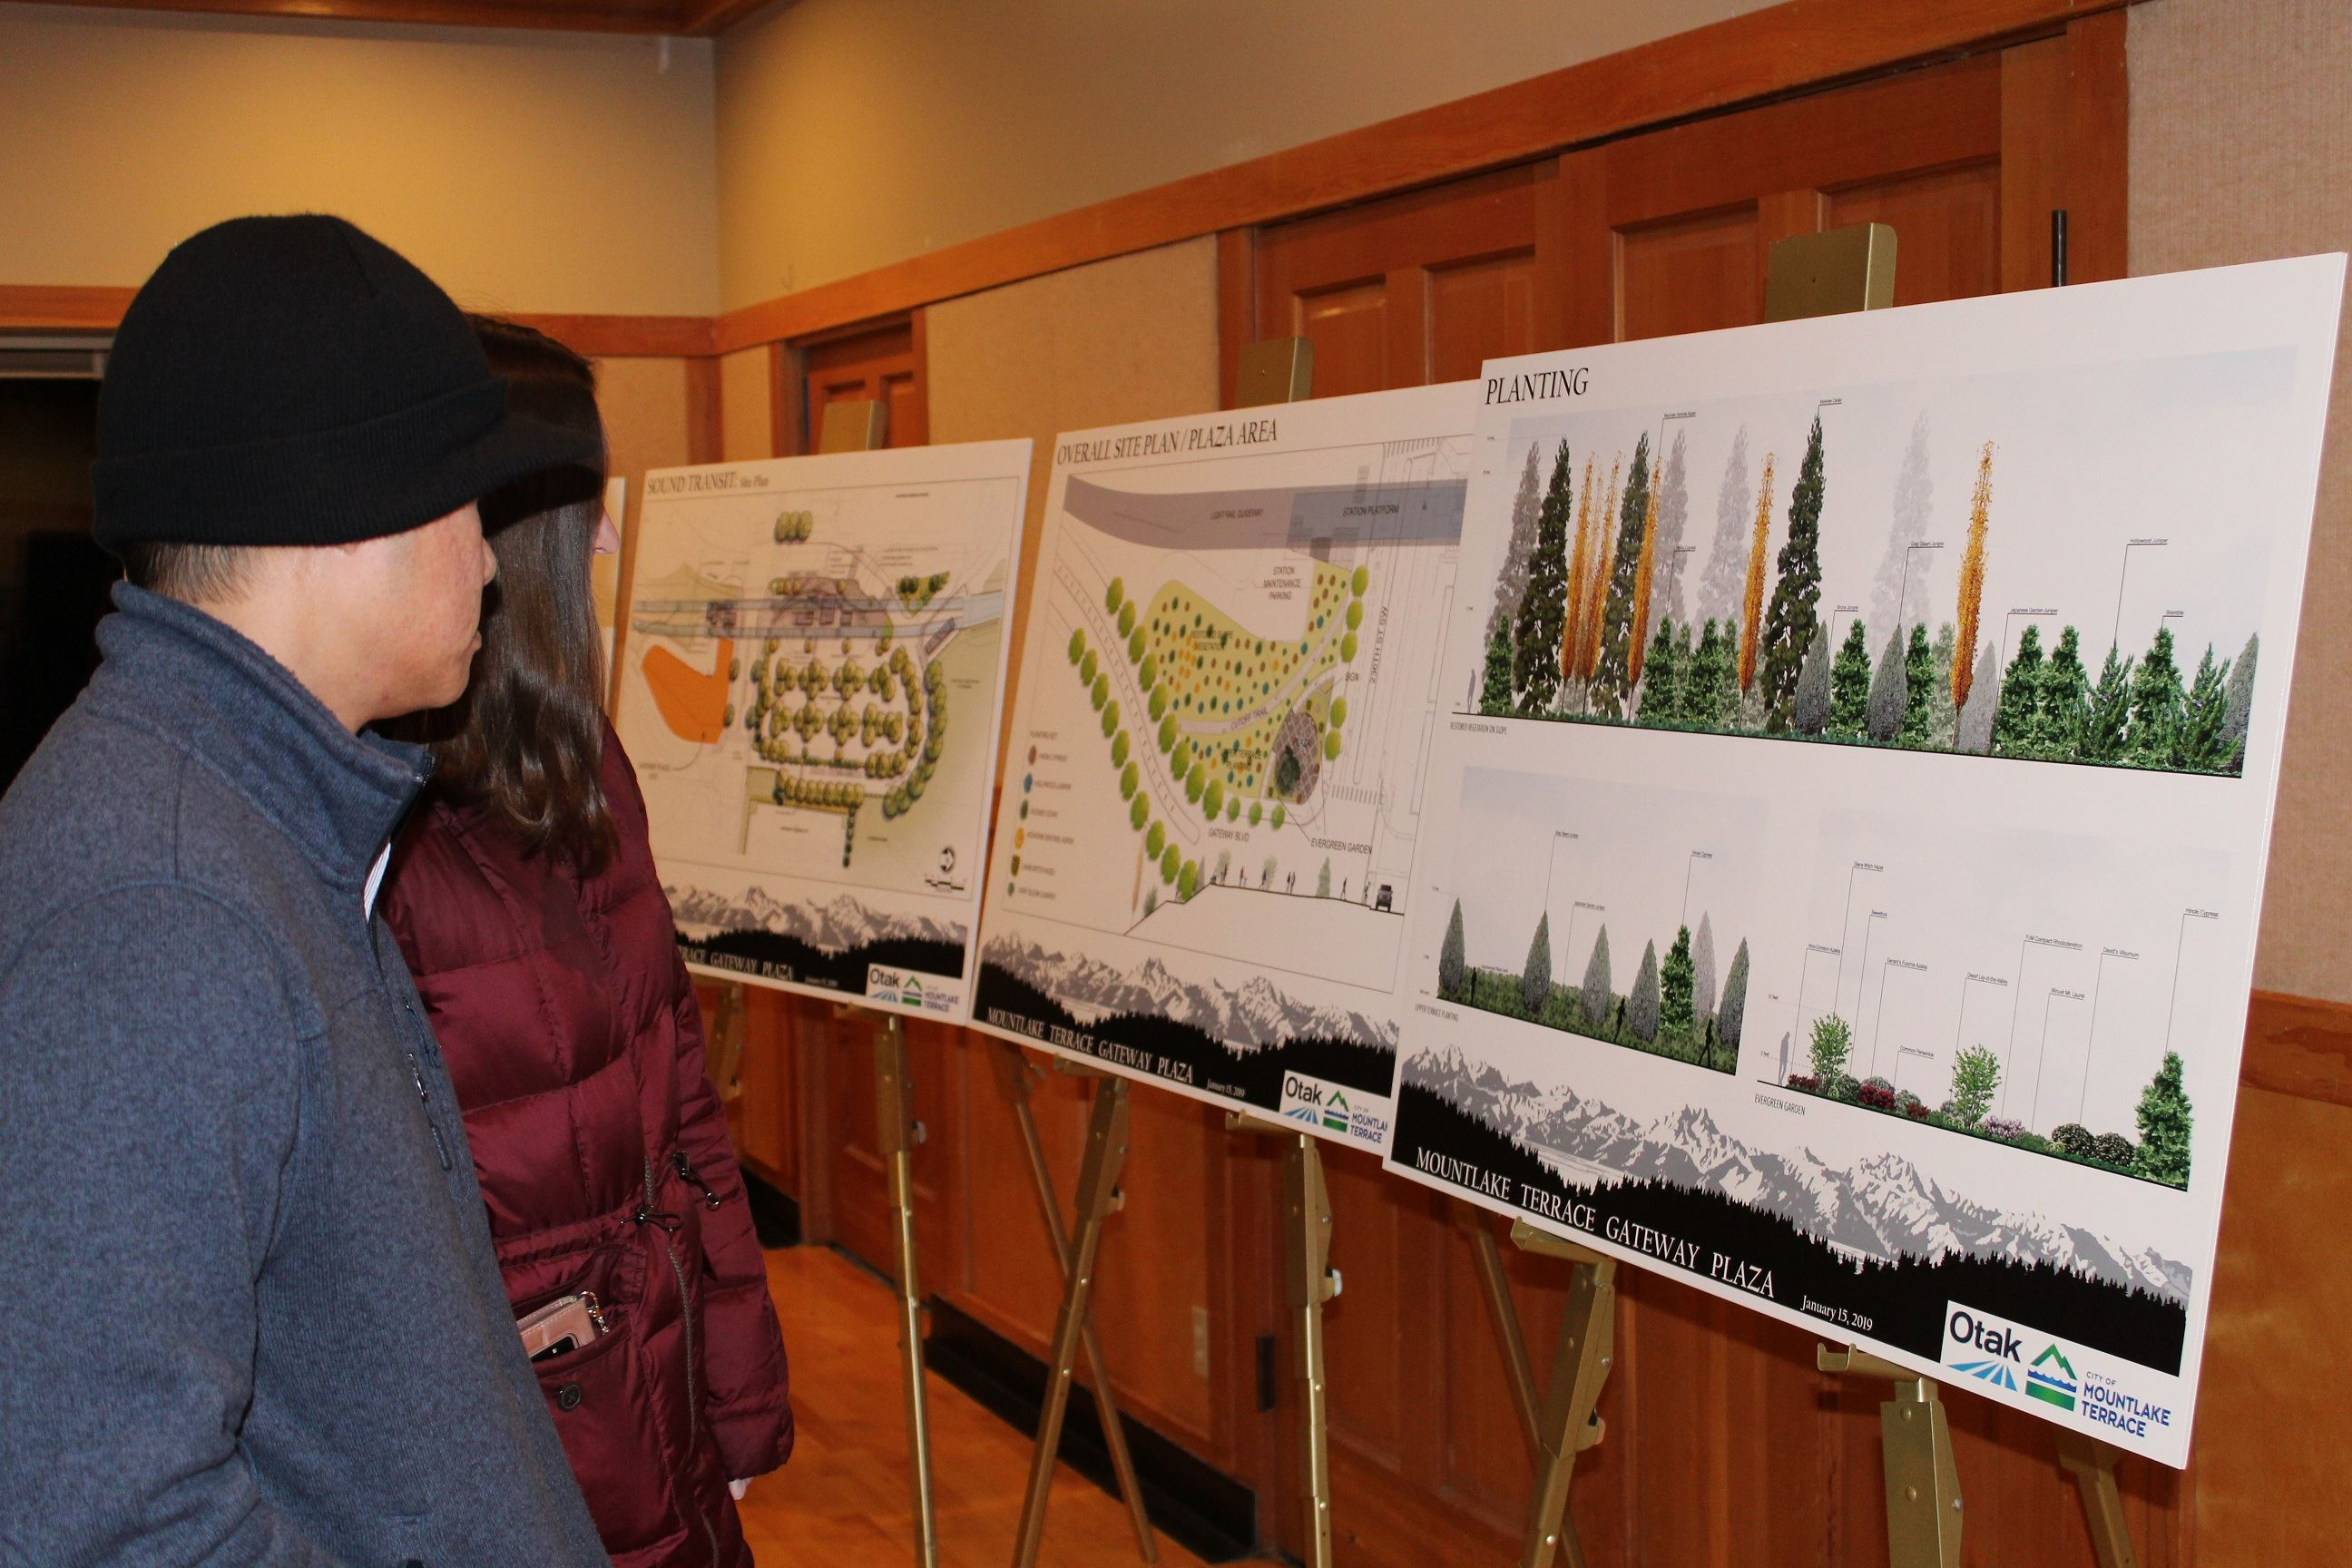 Gateway Plaza Open House January 15 - People Looking at Drawings